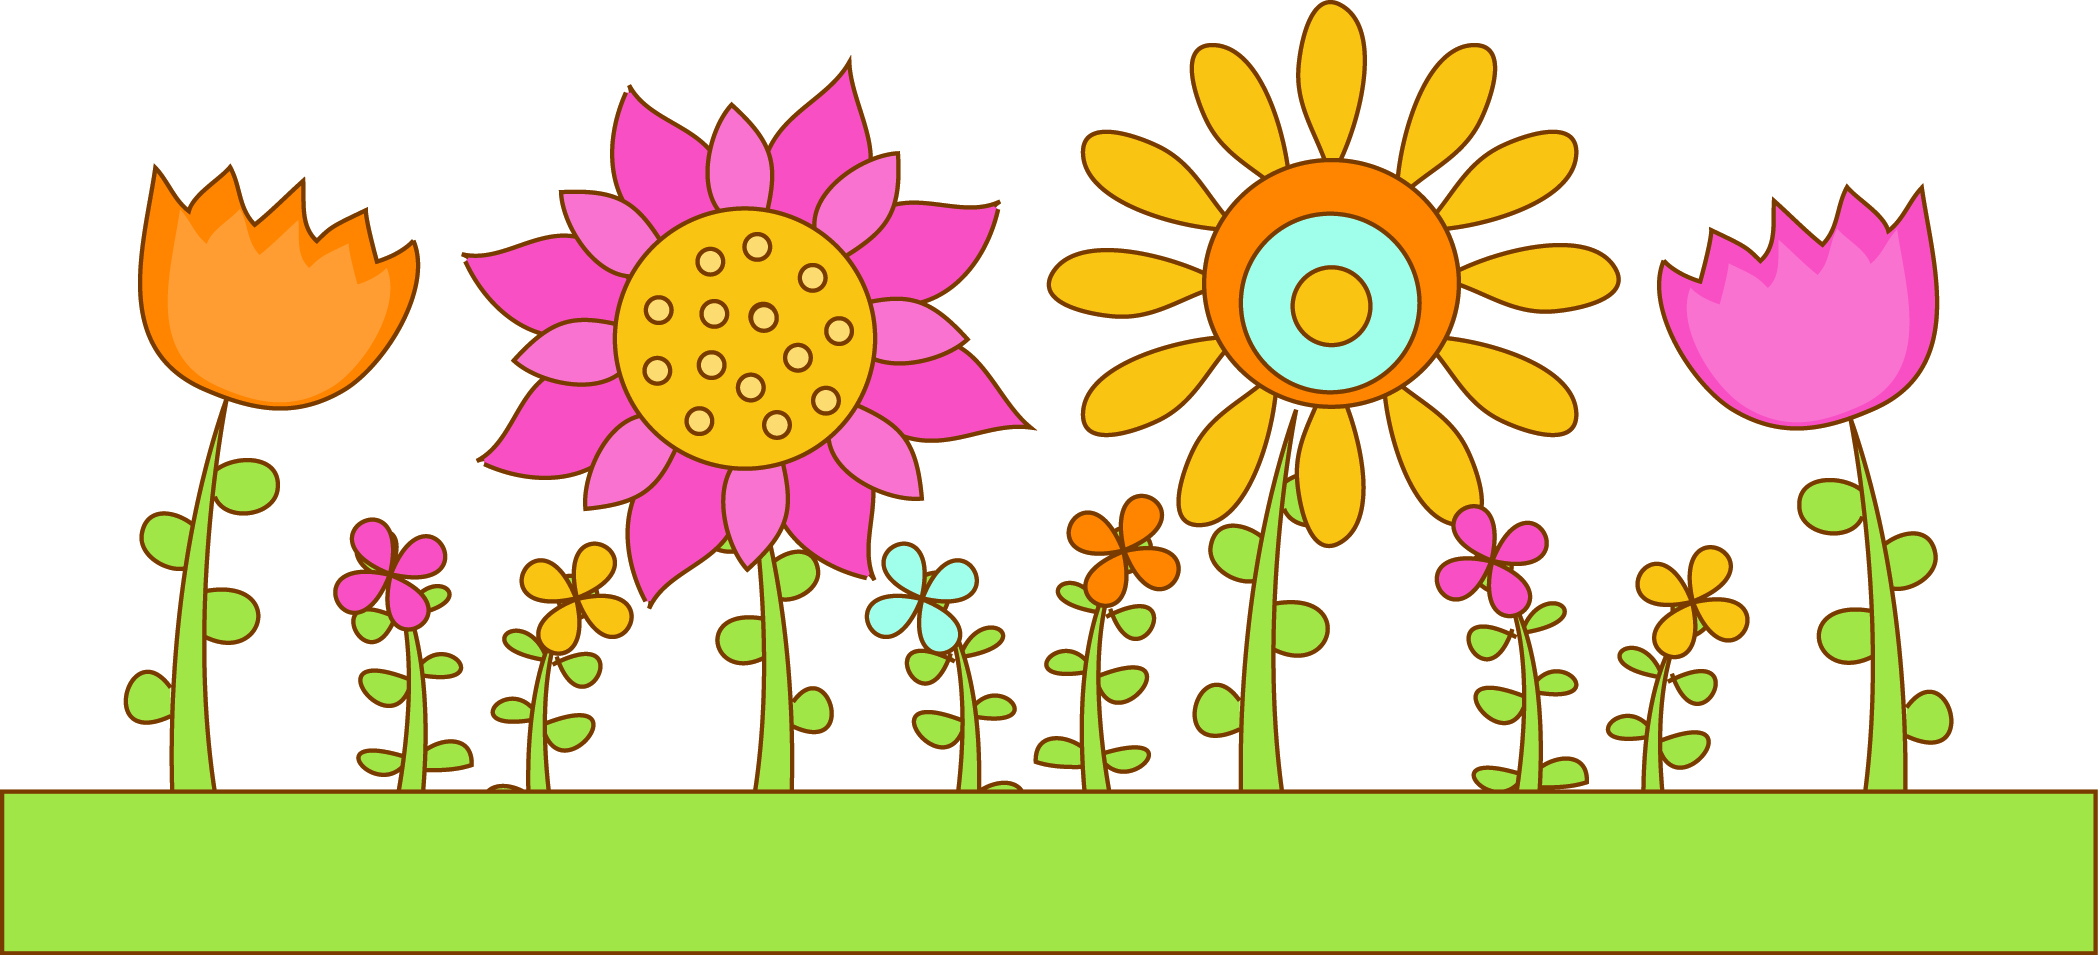 Flower Bed Clipart #1 - Free Garden Clipart